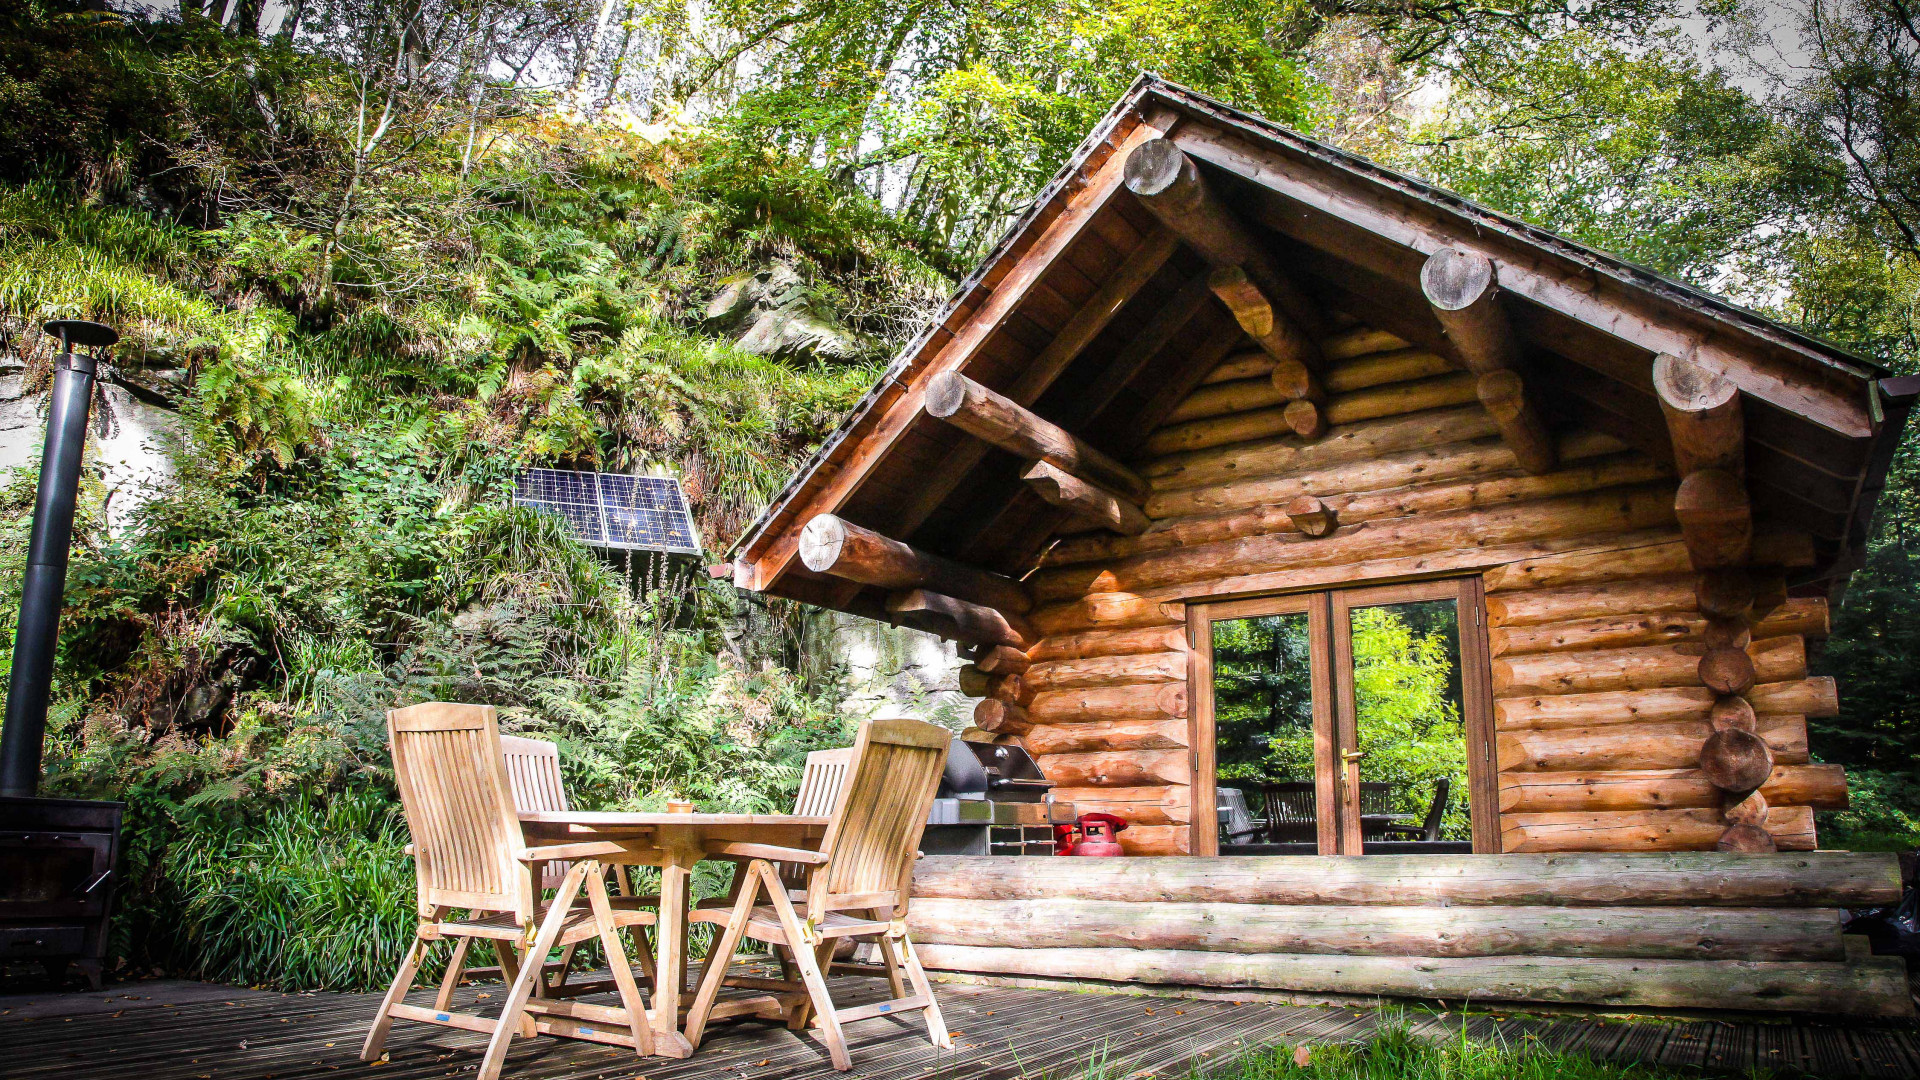 Best self-catering in the UK: Wood Cabin, Lake District in the sunshine